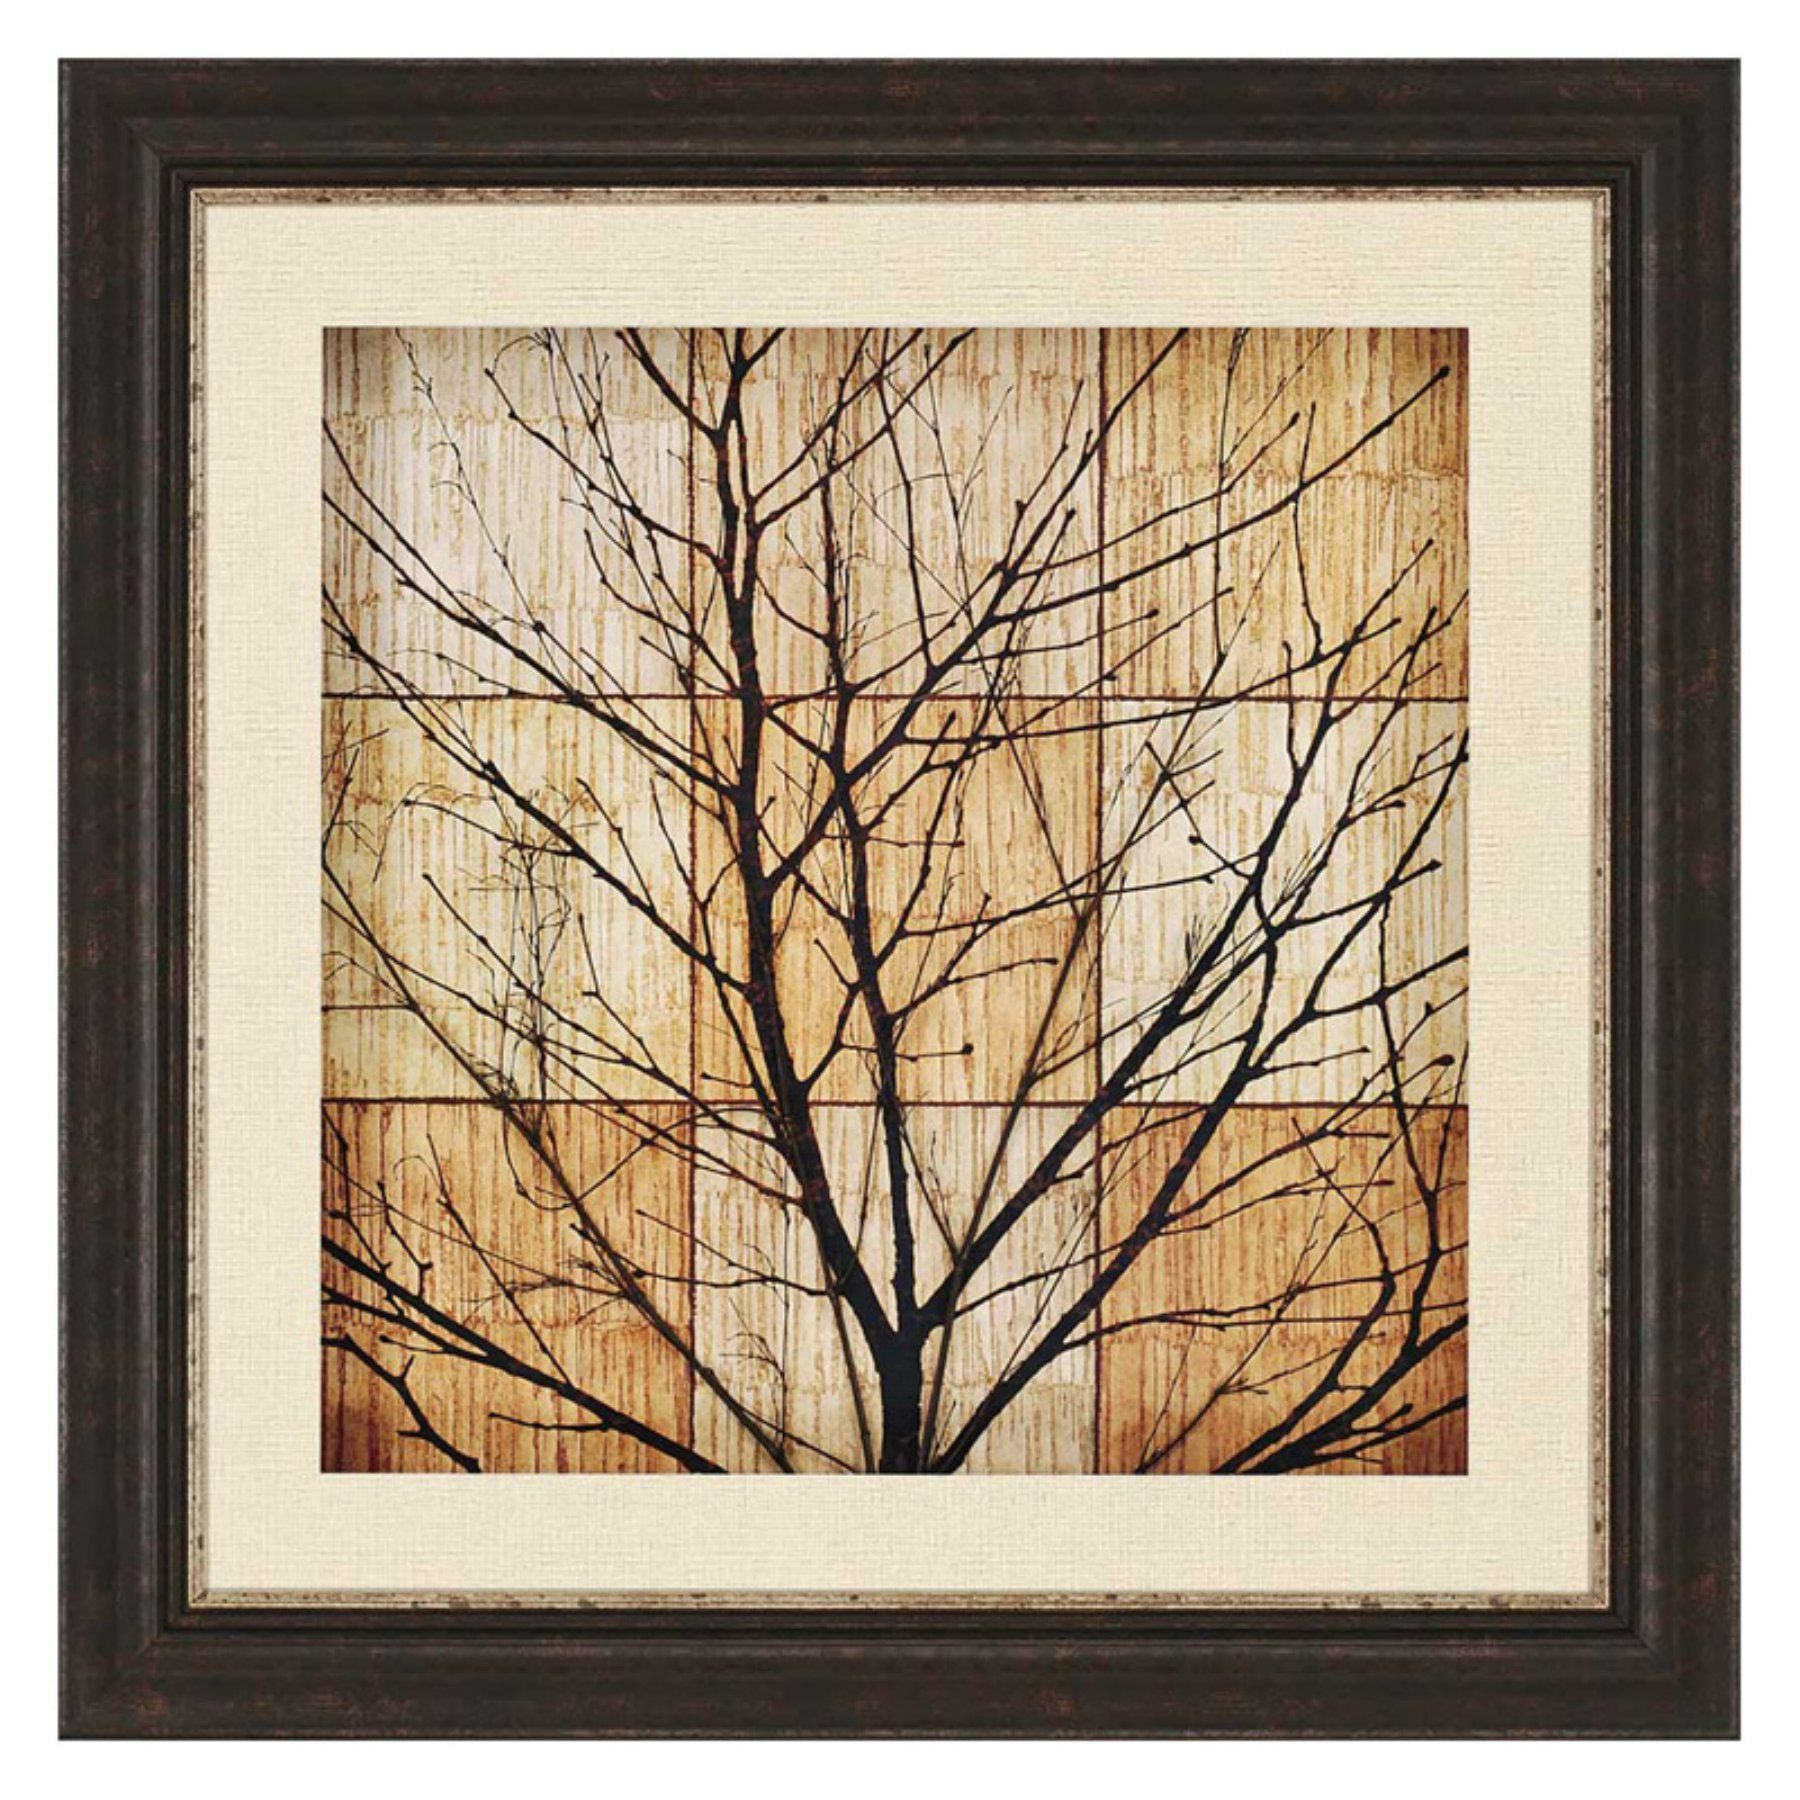 Paragon decor tree silhouette ii framed wall art tree